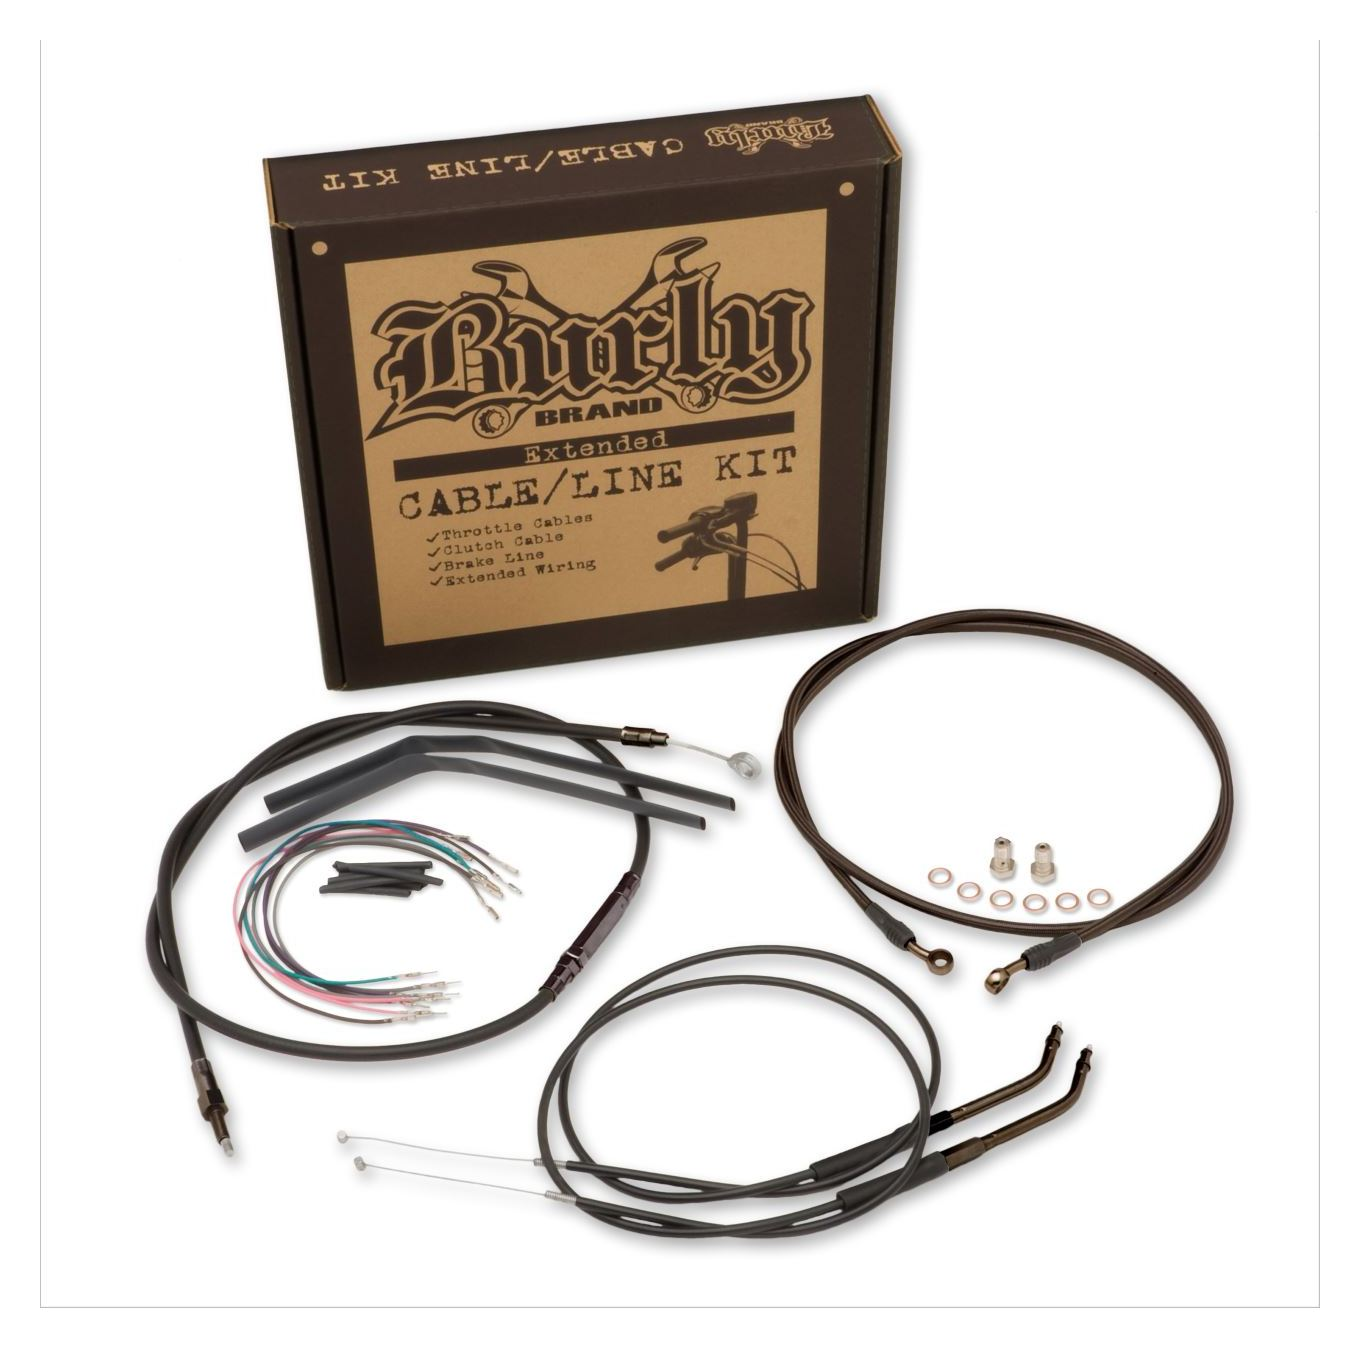 Cable Installation Kit : Burly t bar cable installation kit for harley sportster